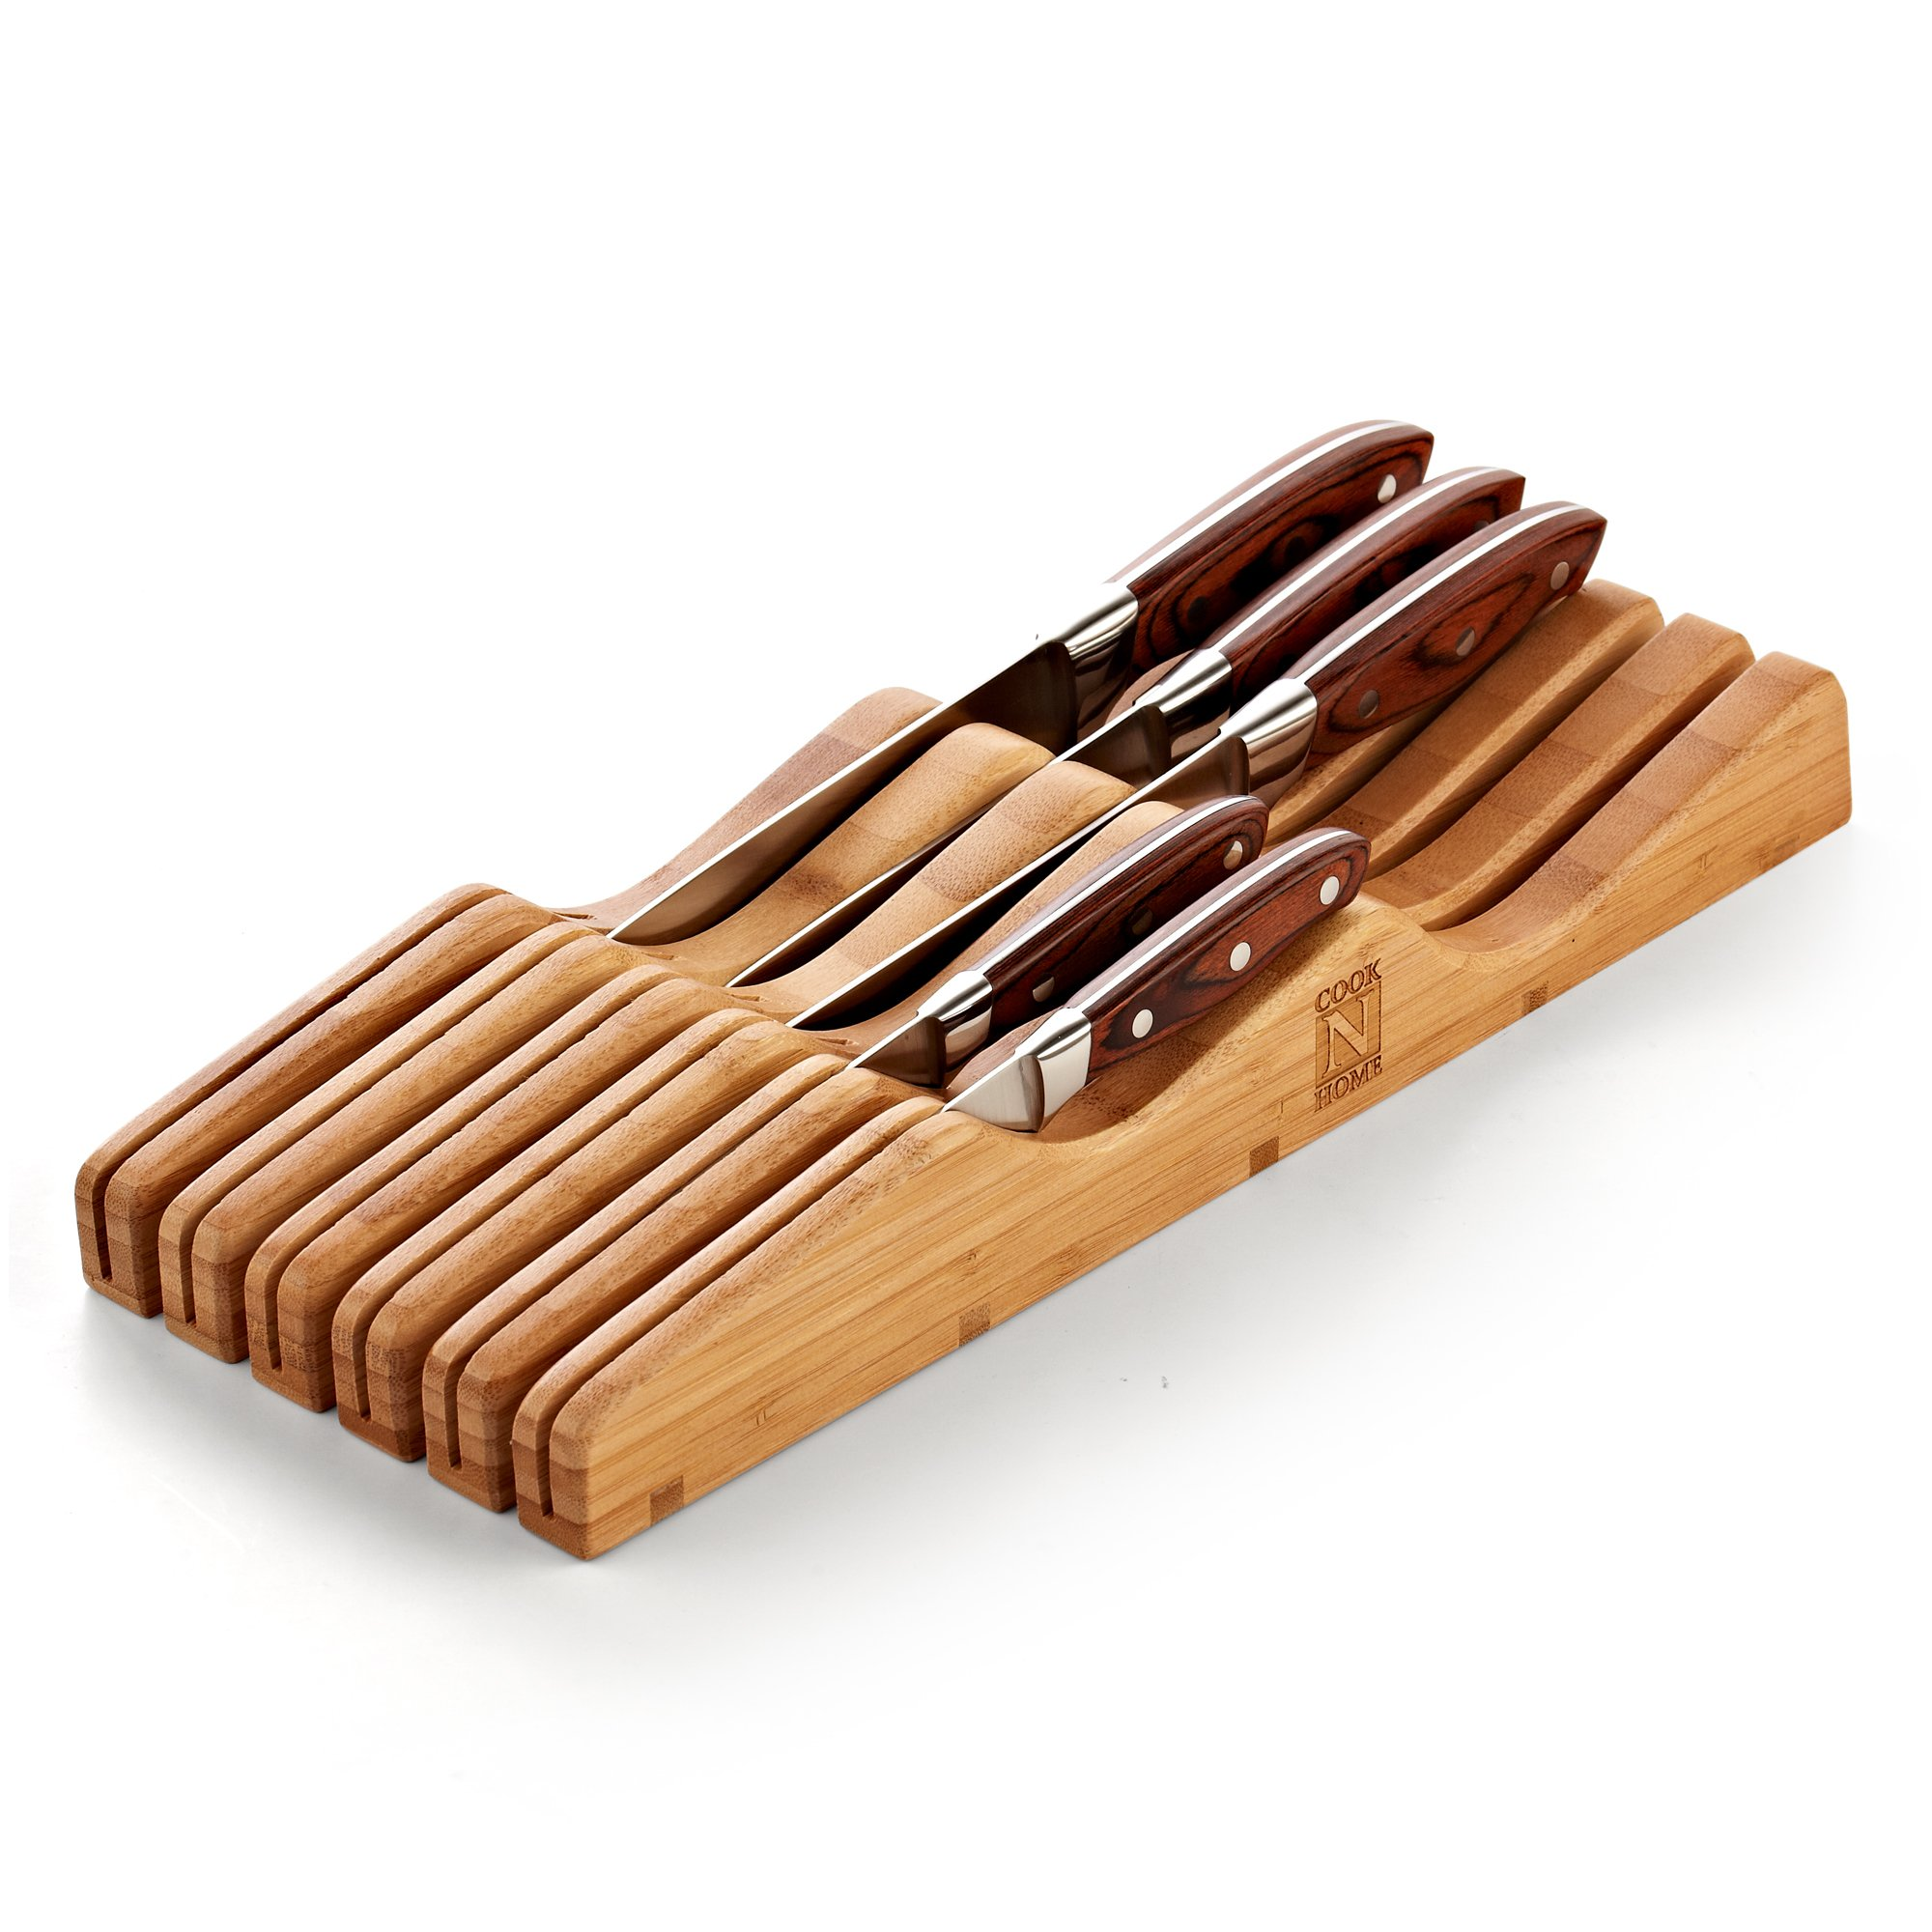 Cook N Home In-Drawer Bamboo Knife Storage Block, 11 Slot by Cook N Home (Image #3)